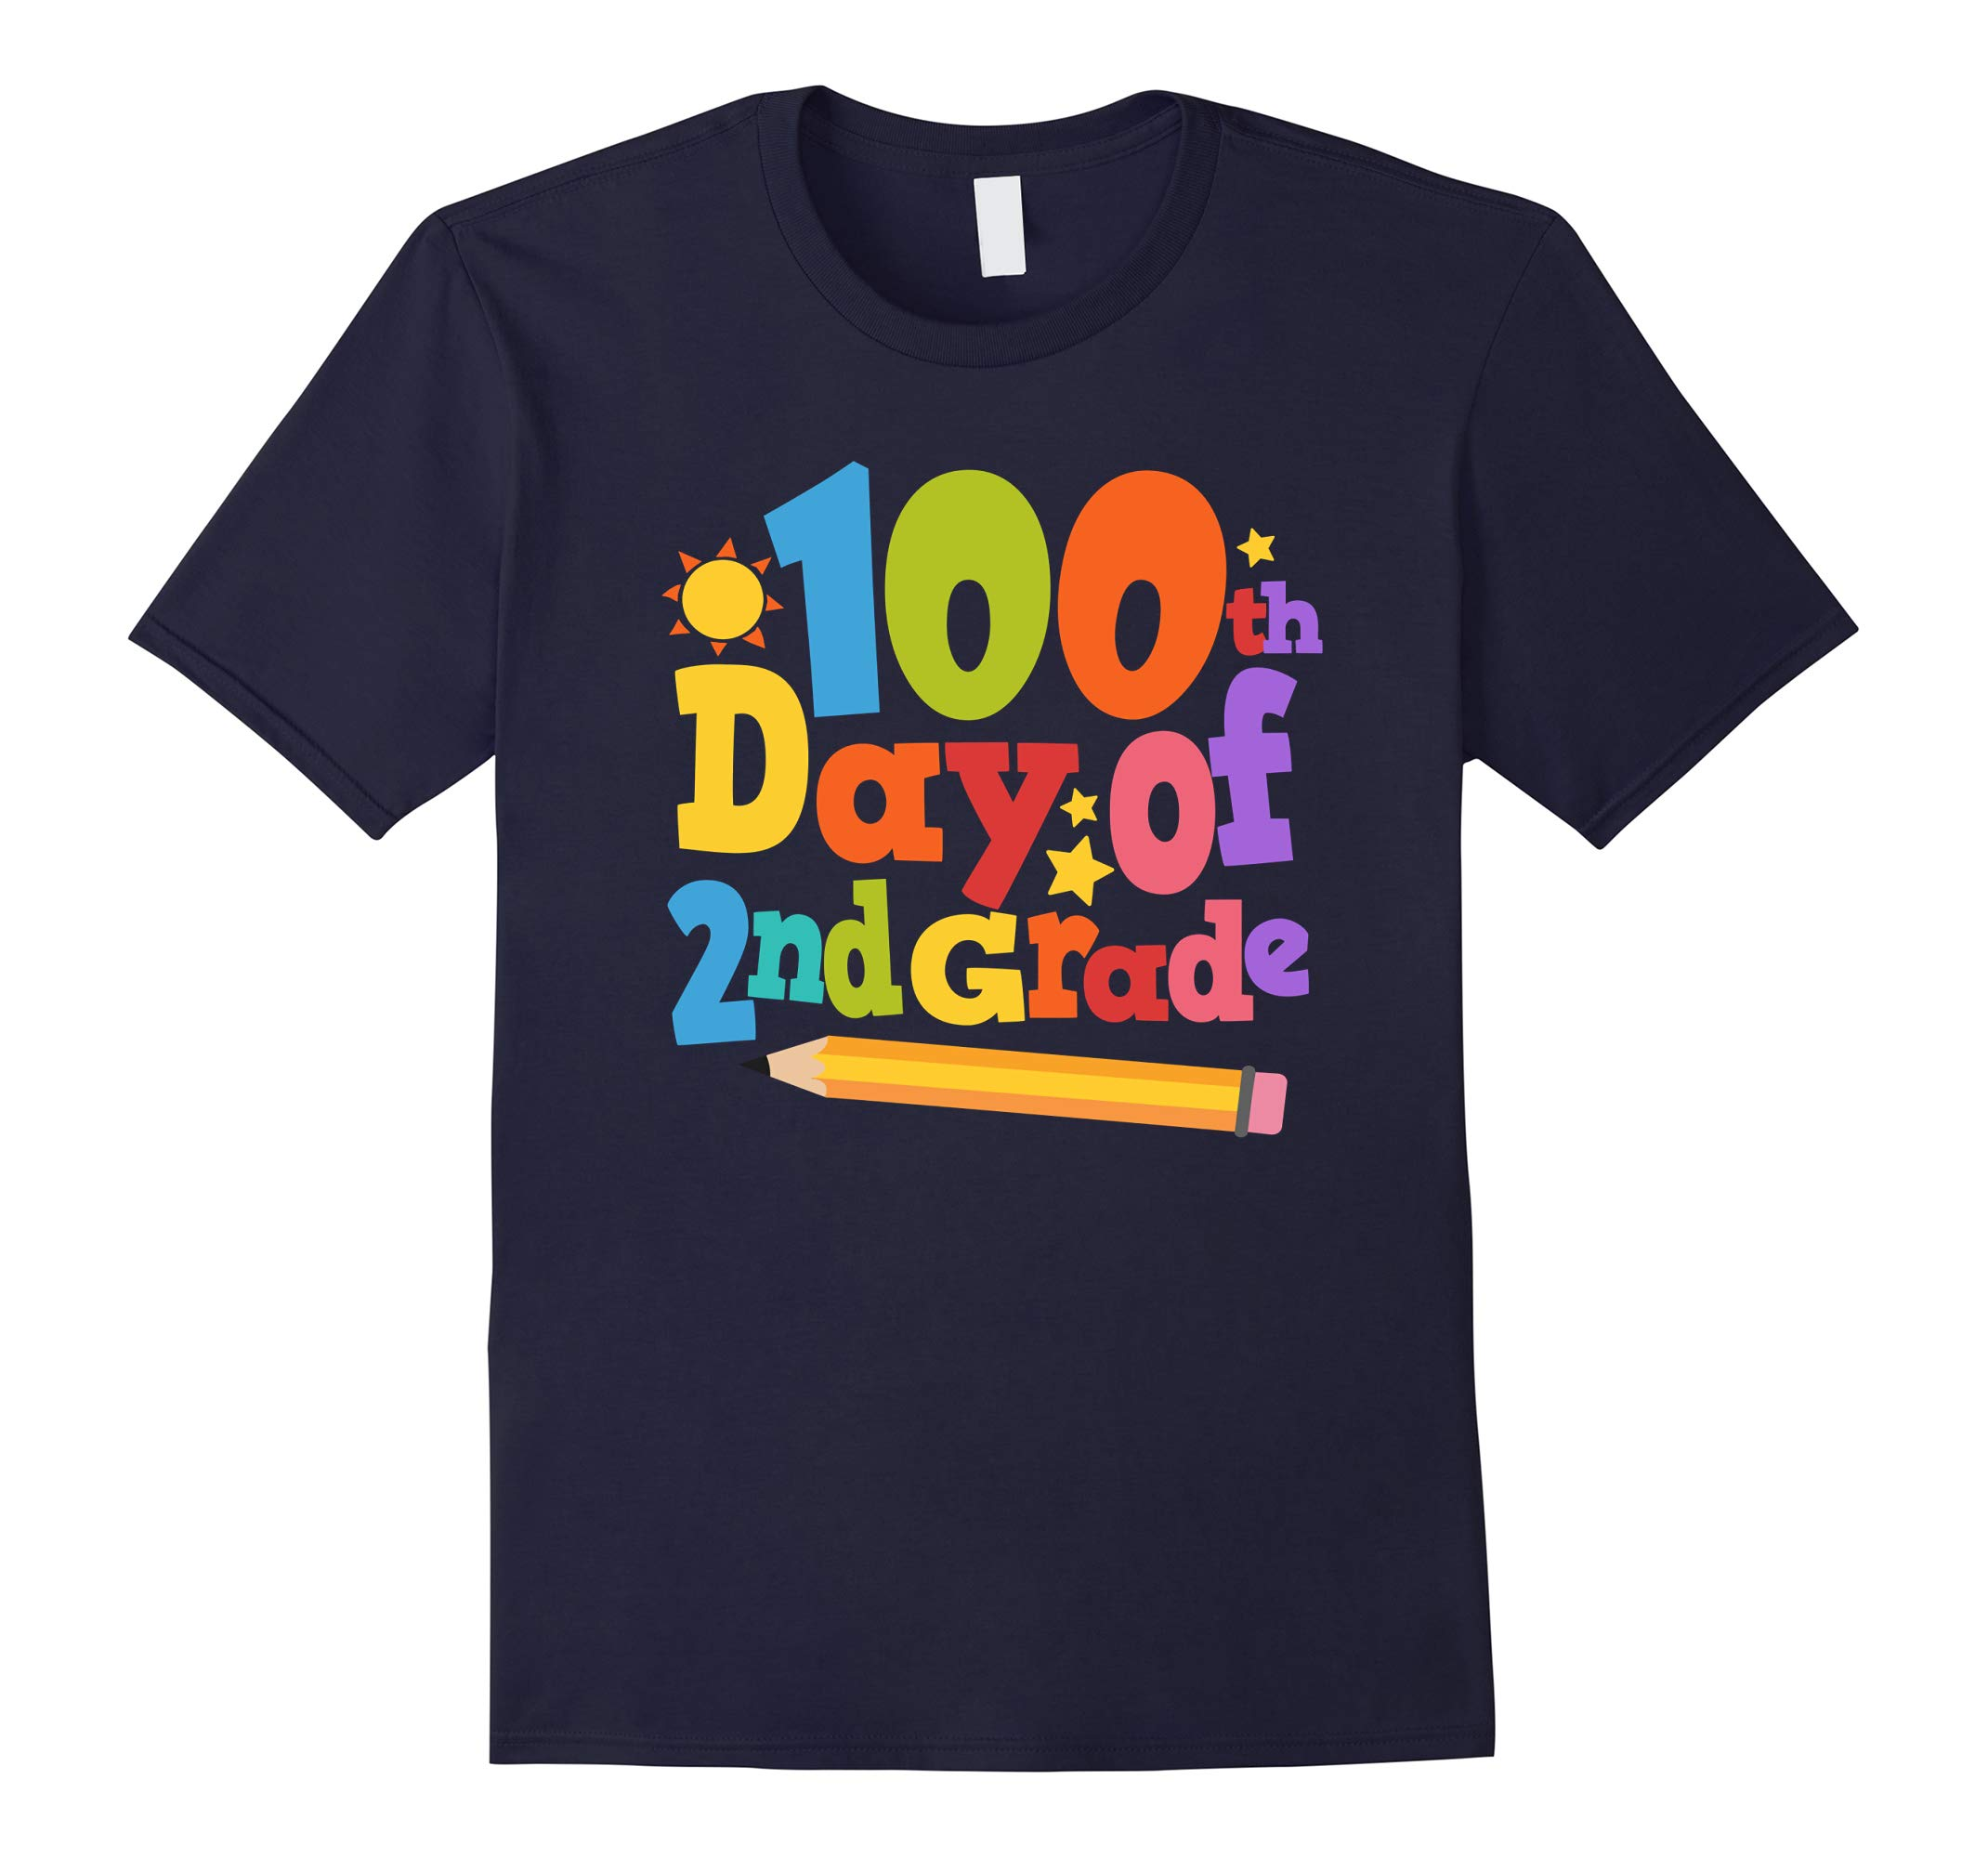 100th Day of School 2nd Grade Shirt Teacher Gift T-Shirt-RT